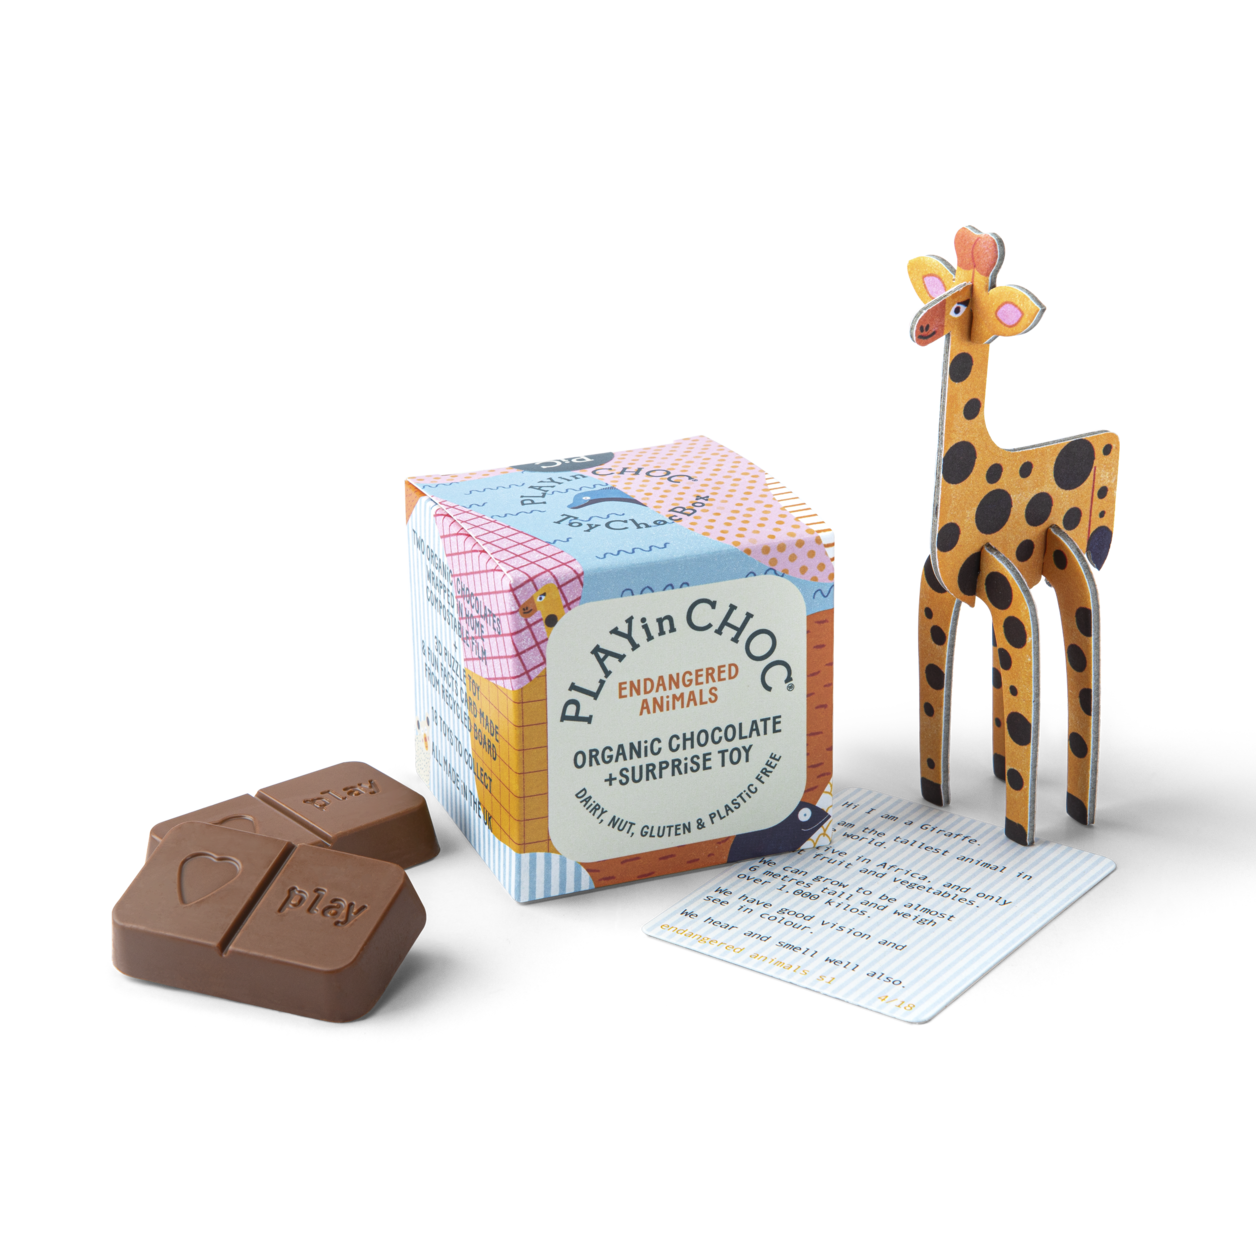 ToyChoc Box - Endangered Animals (Vegan, GF, Organic) by PLAYin CHOC